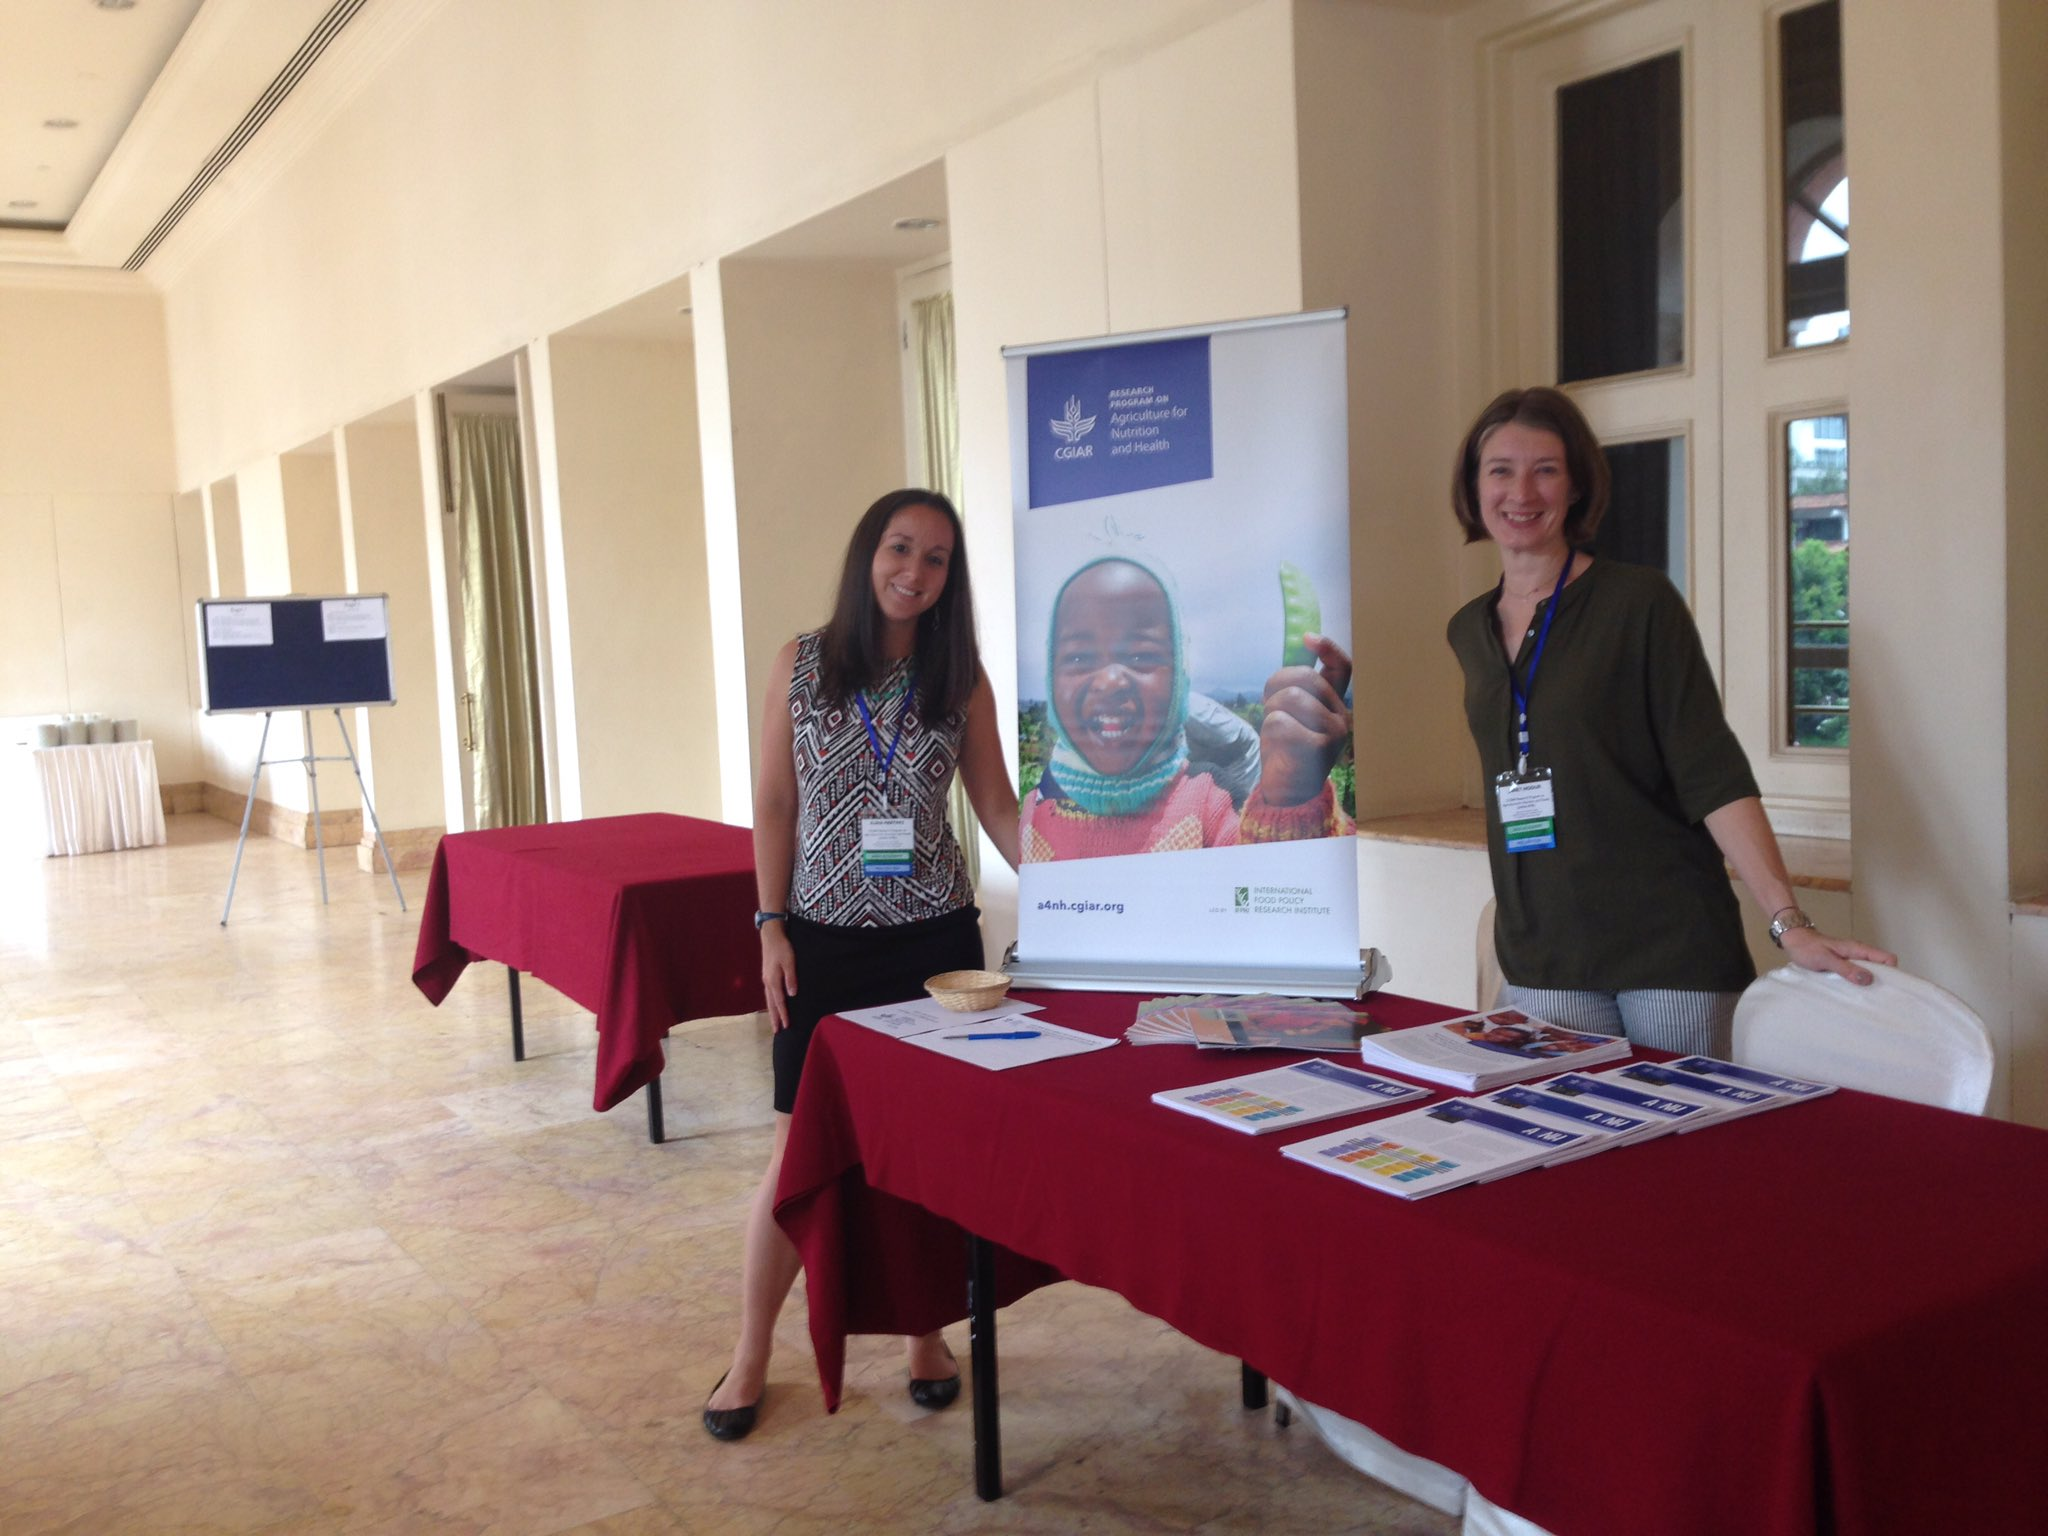 #A4NHResearch is ready for a great #ANH2017 - we look forward to seeing you! #AgNutSympo @IMMANA_res @CGIARnutrition https://t.co/eYWhN6svzu